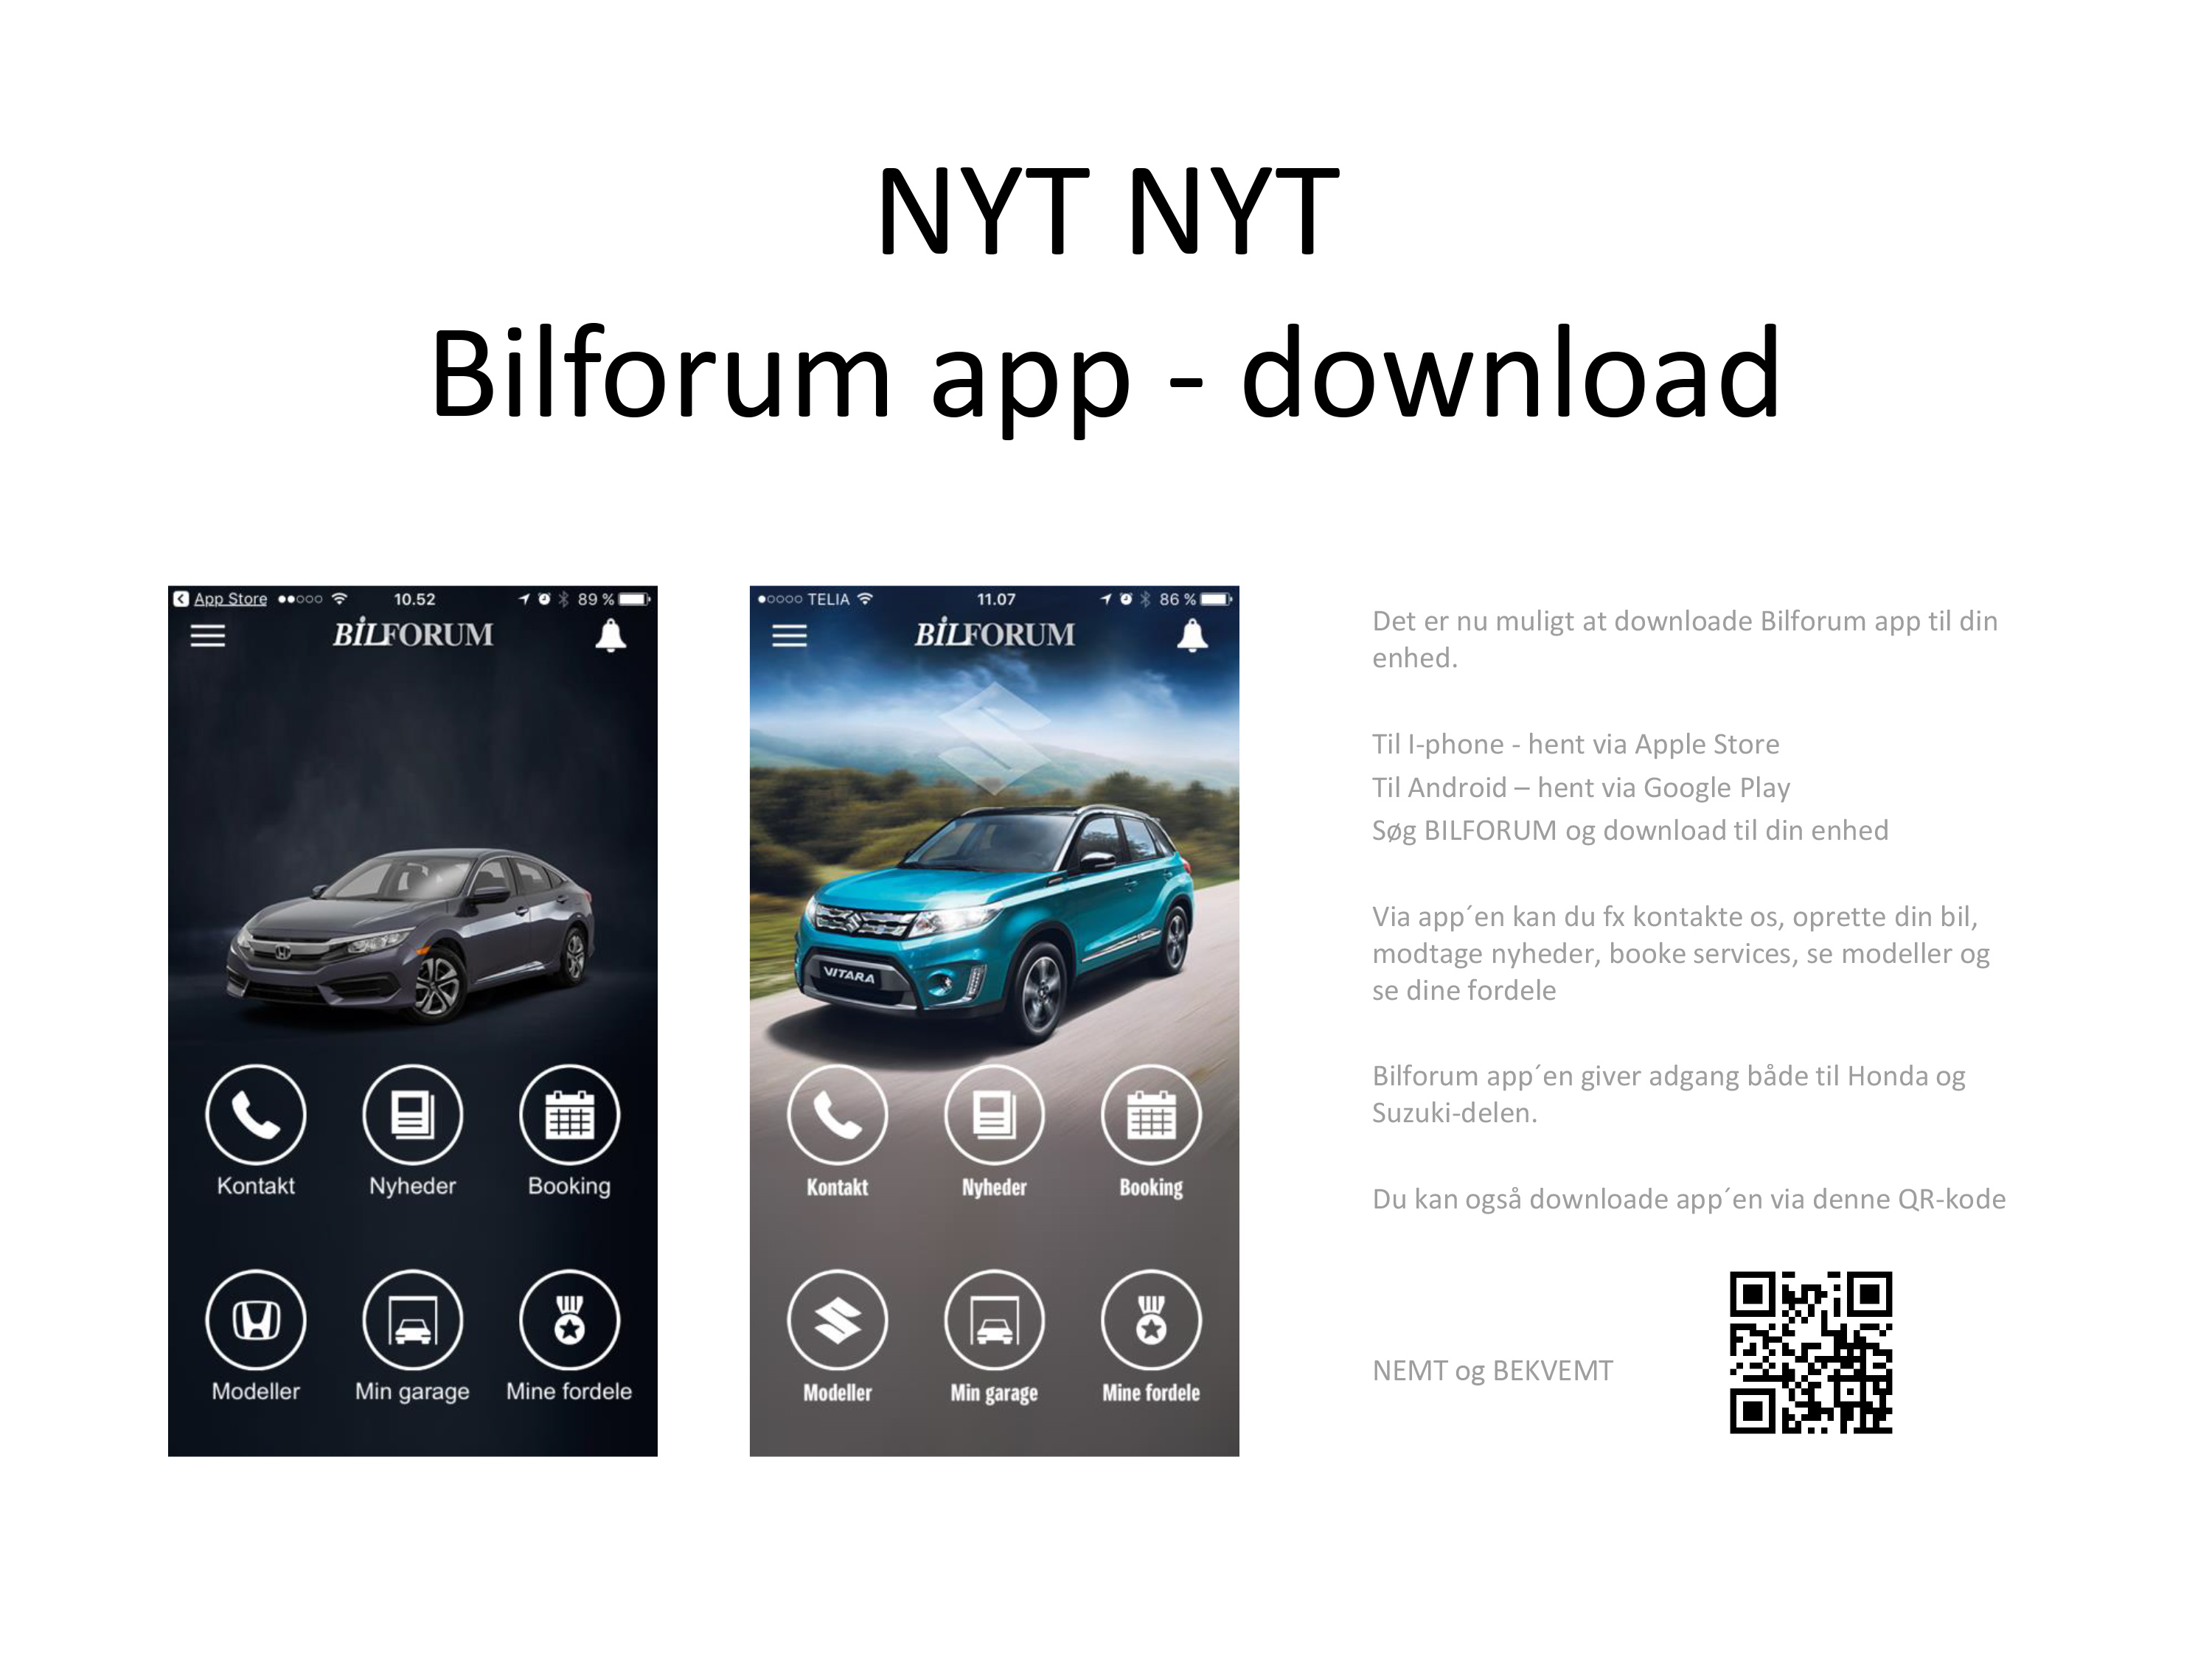 NYT NYT Download Bilforum app